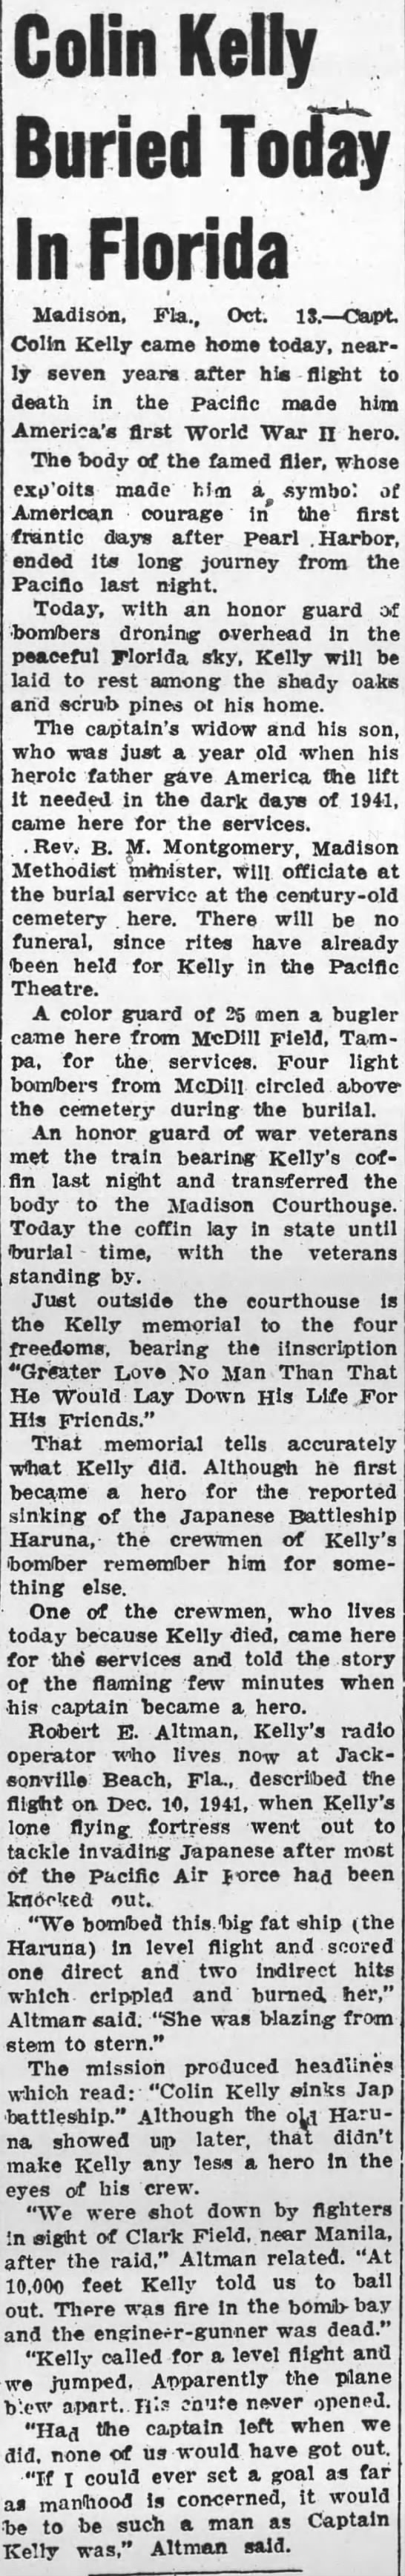 Pittston Gazette (Pittston, Pennsylvania) 13 October 1948  Page 1 - Colin Kellyv Buried Today In Florida Madison,...